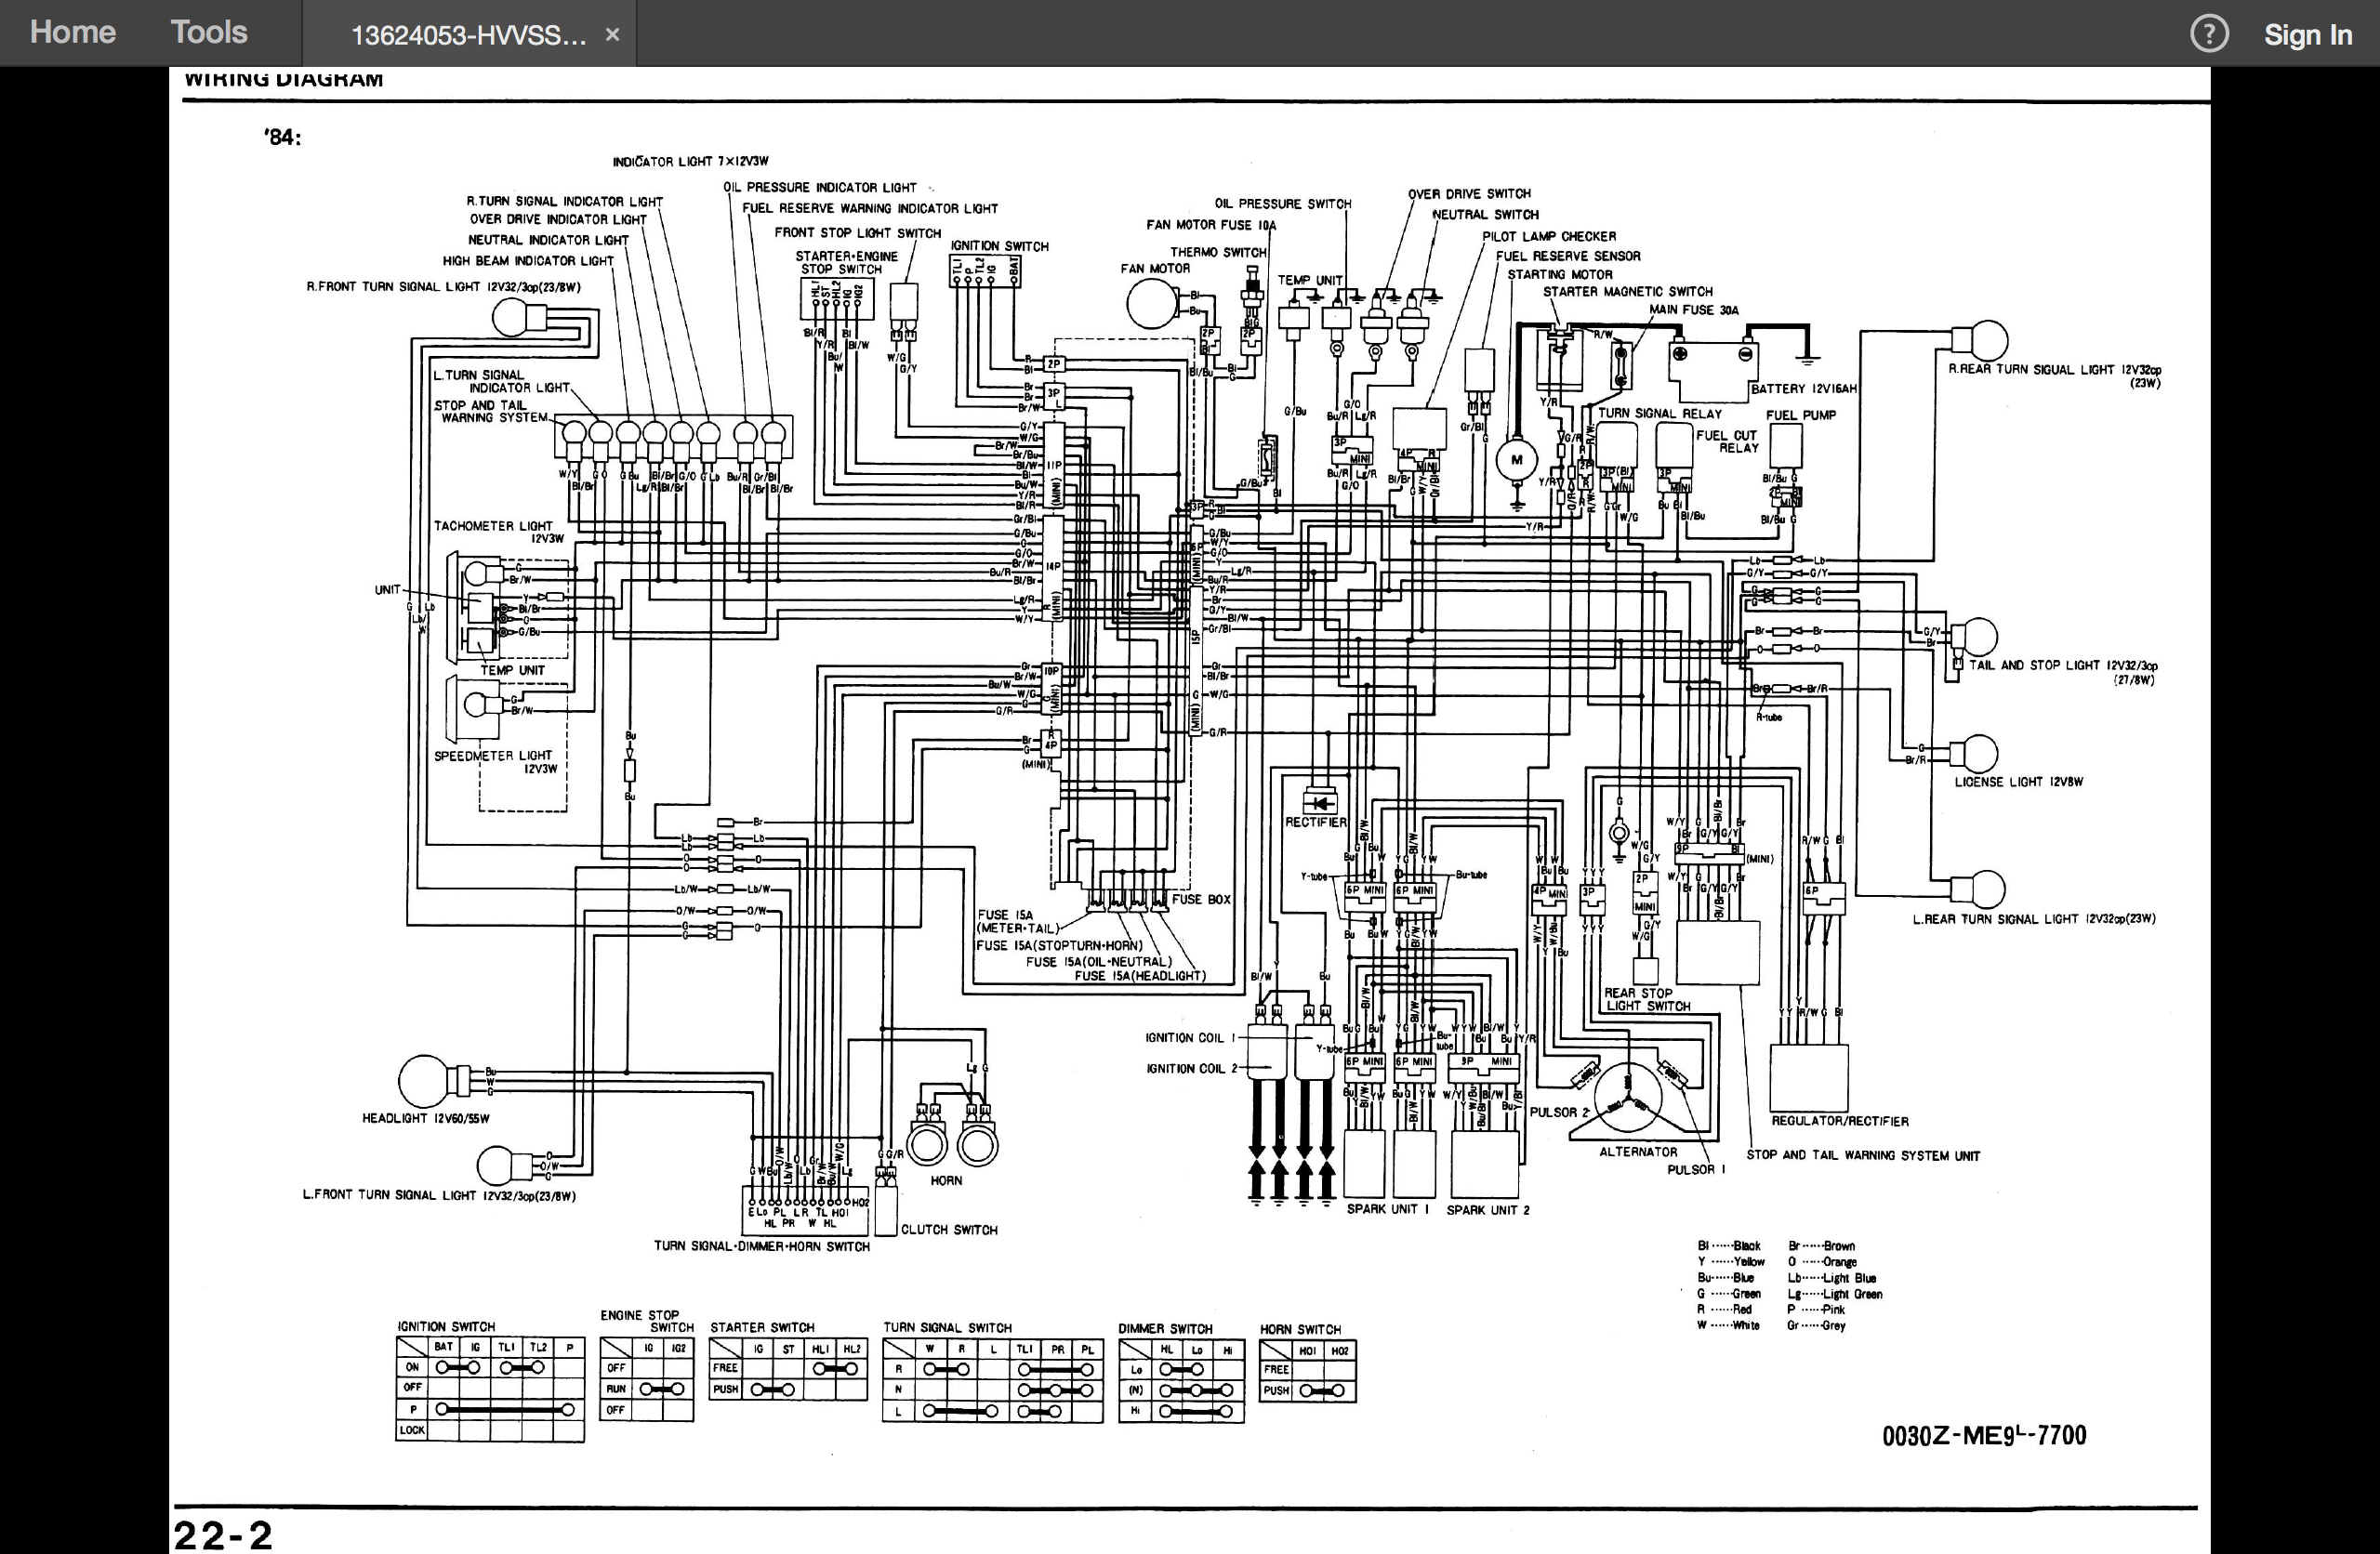 Yamaha Electric Golf Cart Wiring Diagram Jn8 - Wiring ...